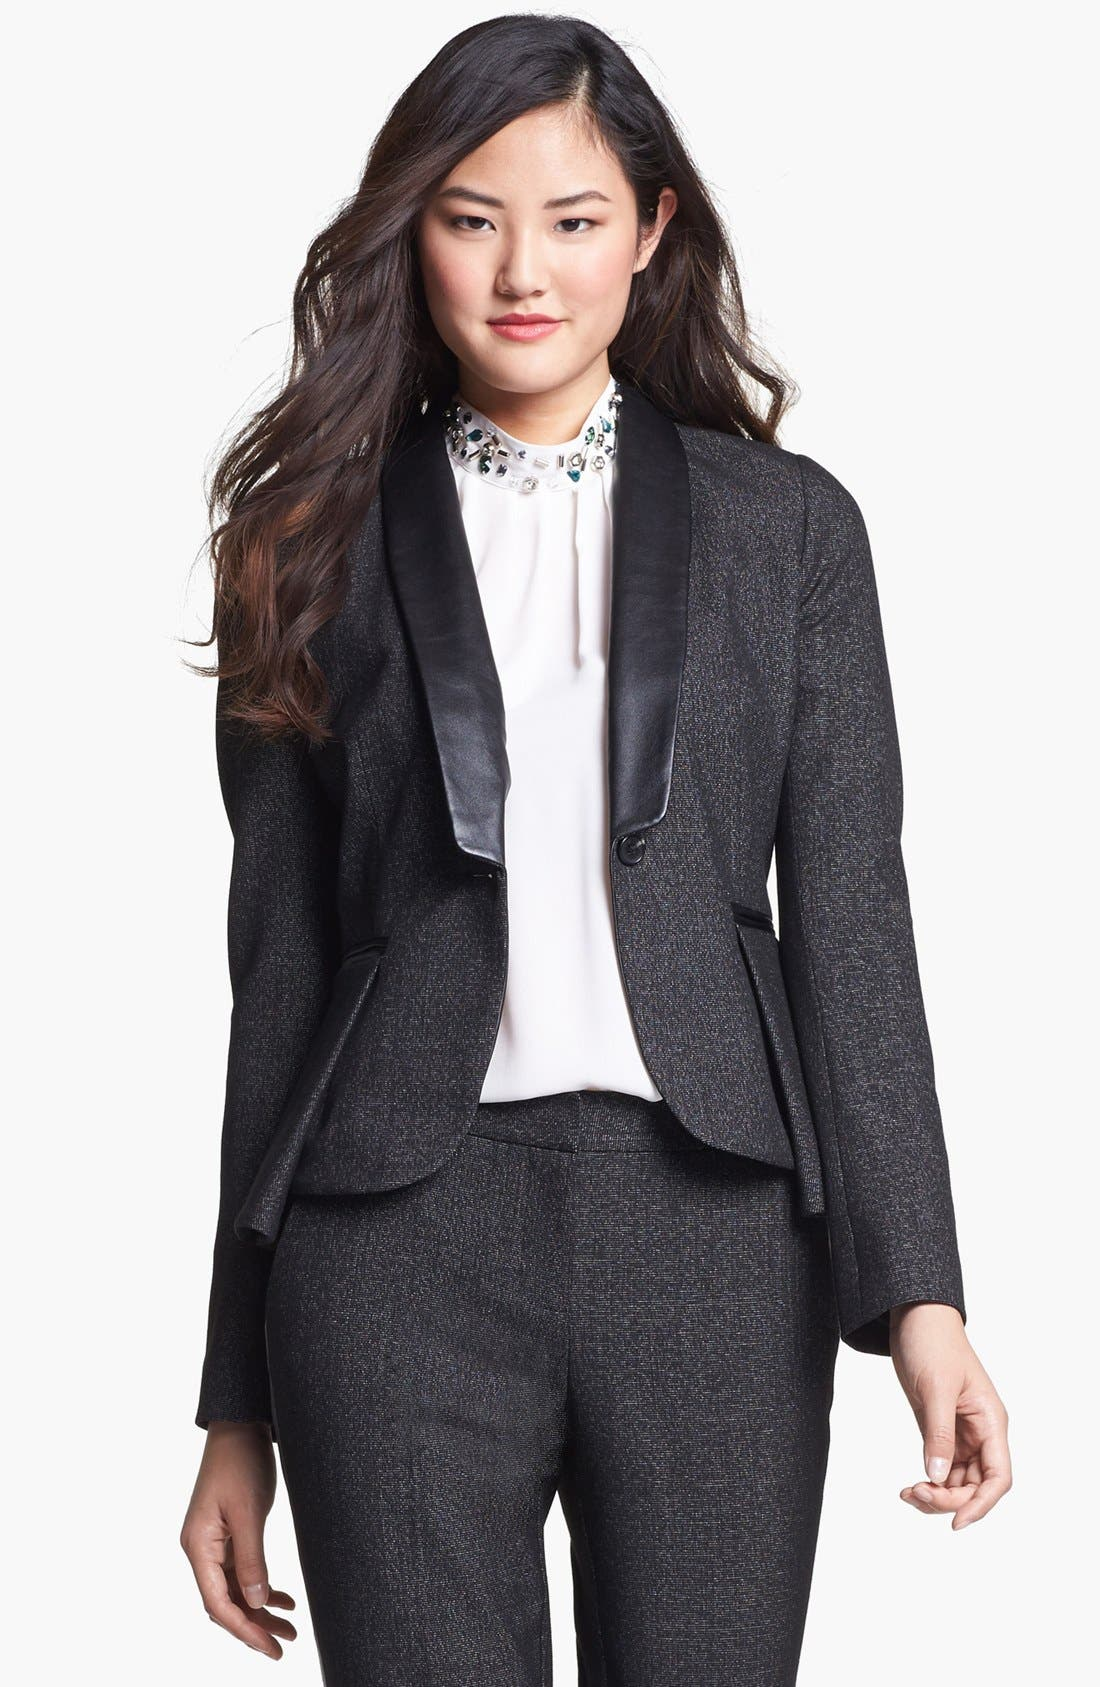 Alternate Image 1 Selected - Vince Camuto Faux Leather Collar Peplum Blazer